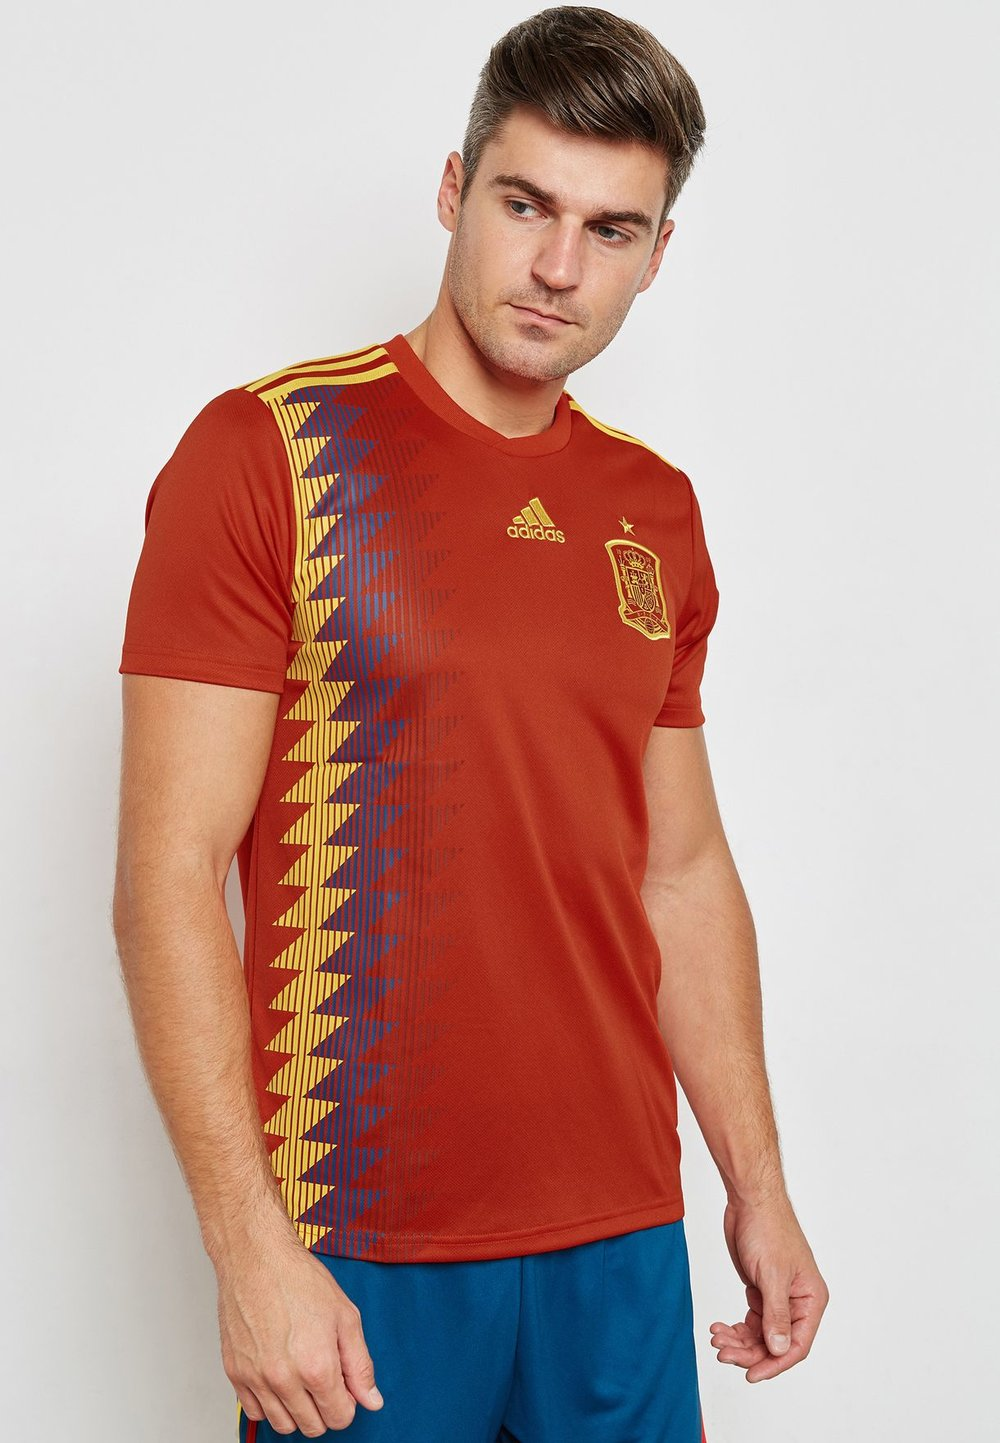 adidas  Spain home jersey  395aed/sar